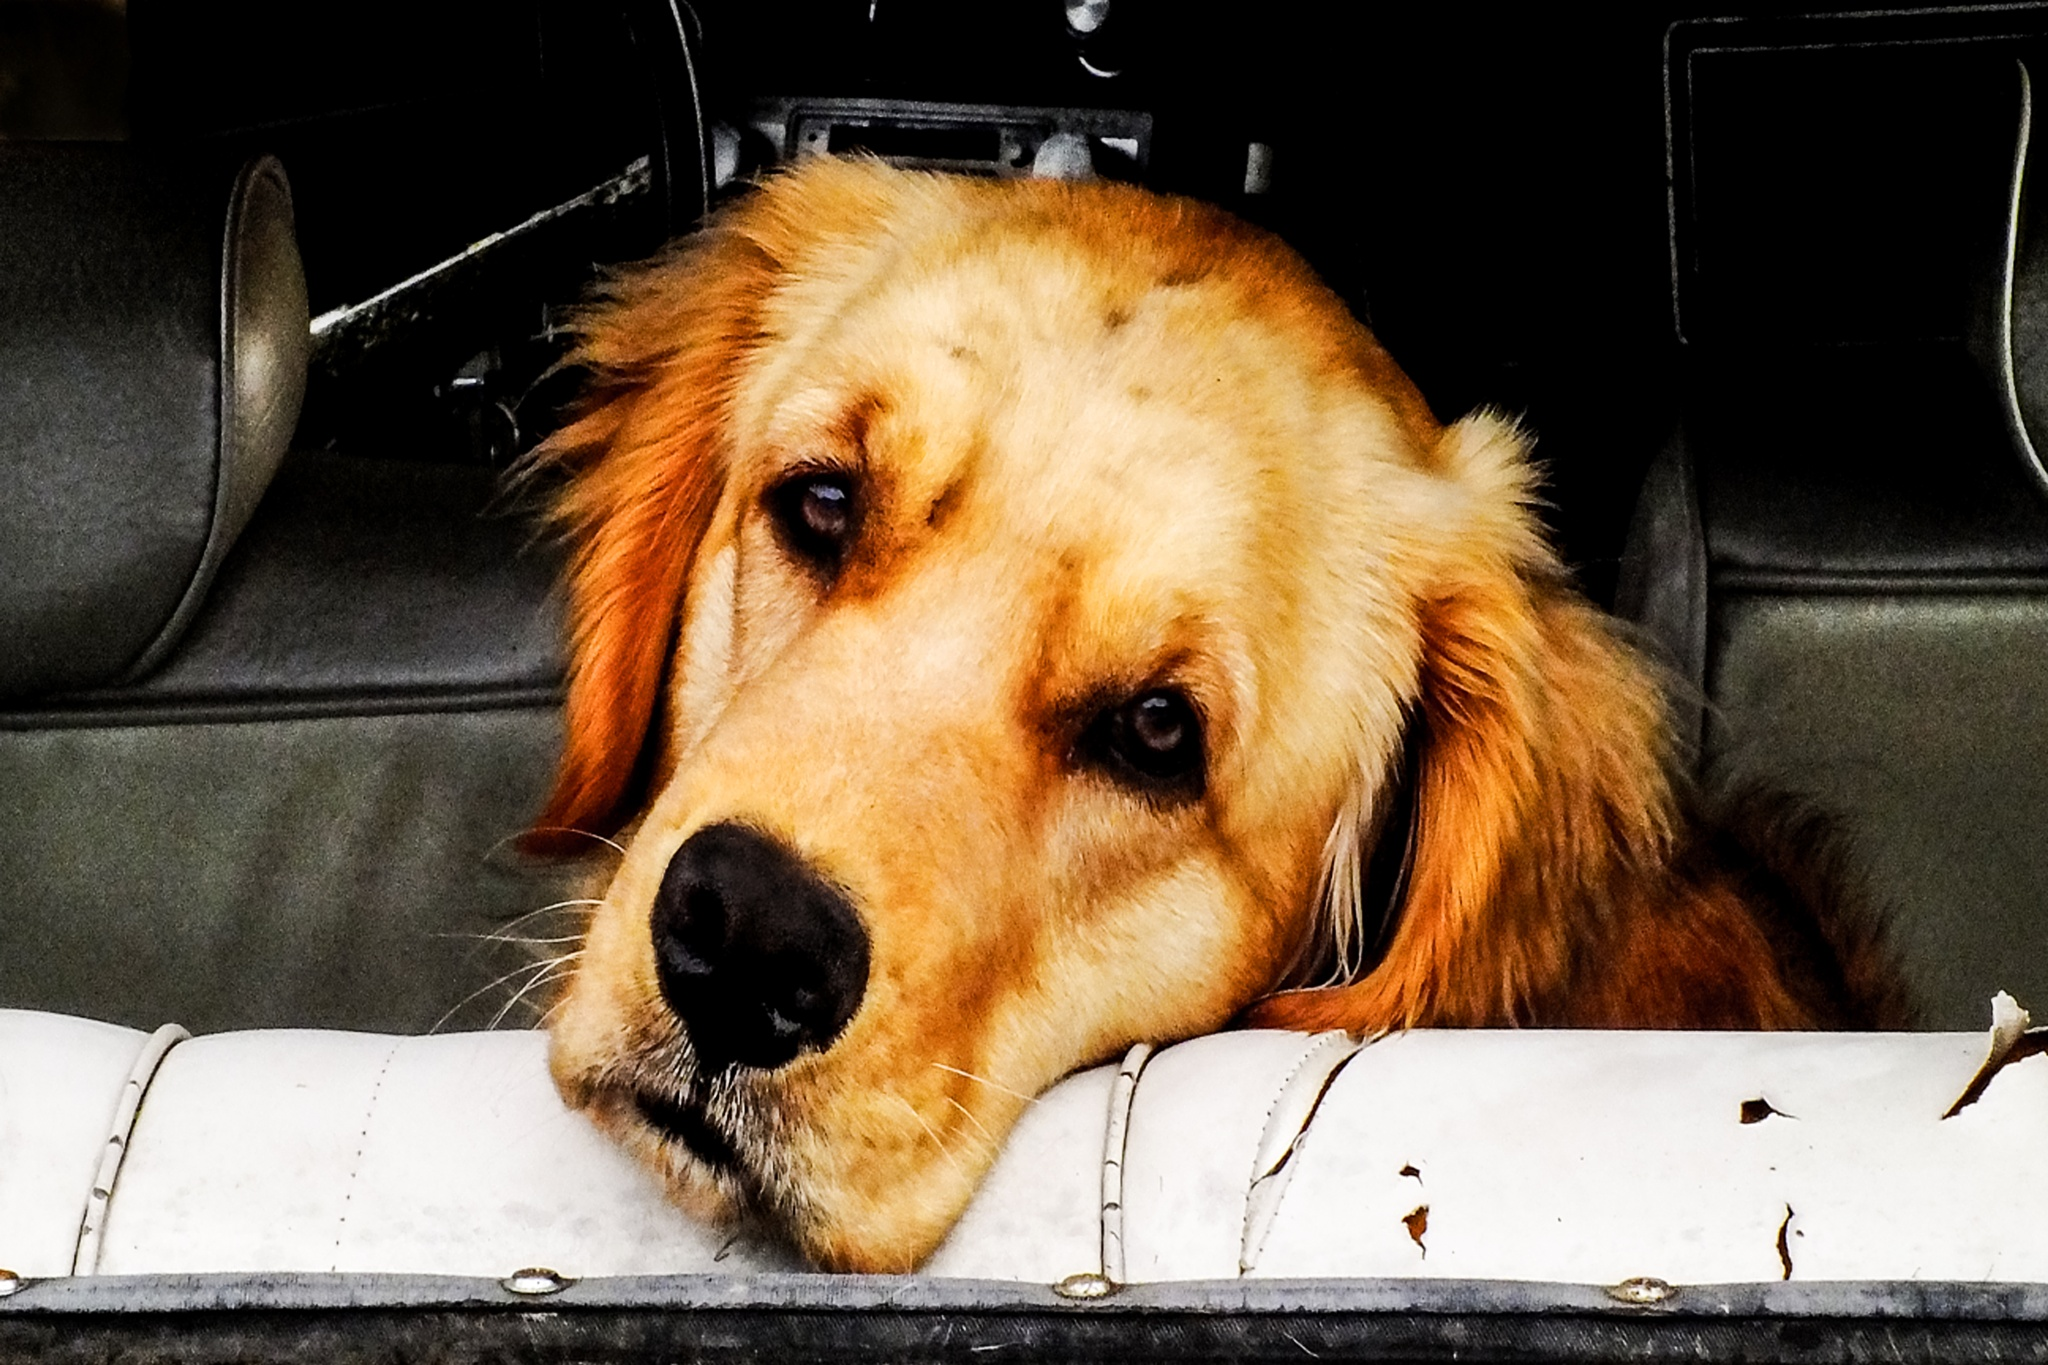 Old Dog in the Back Seat by mfontaine